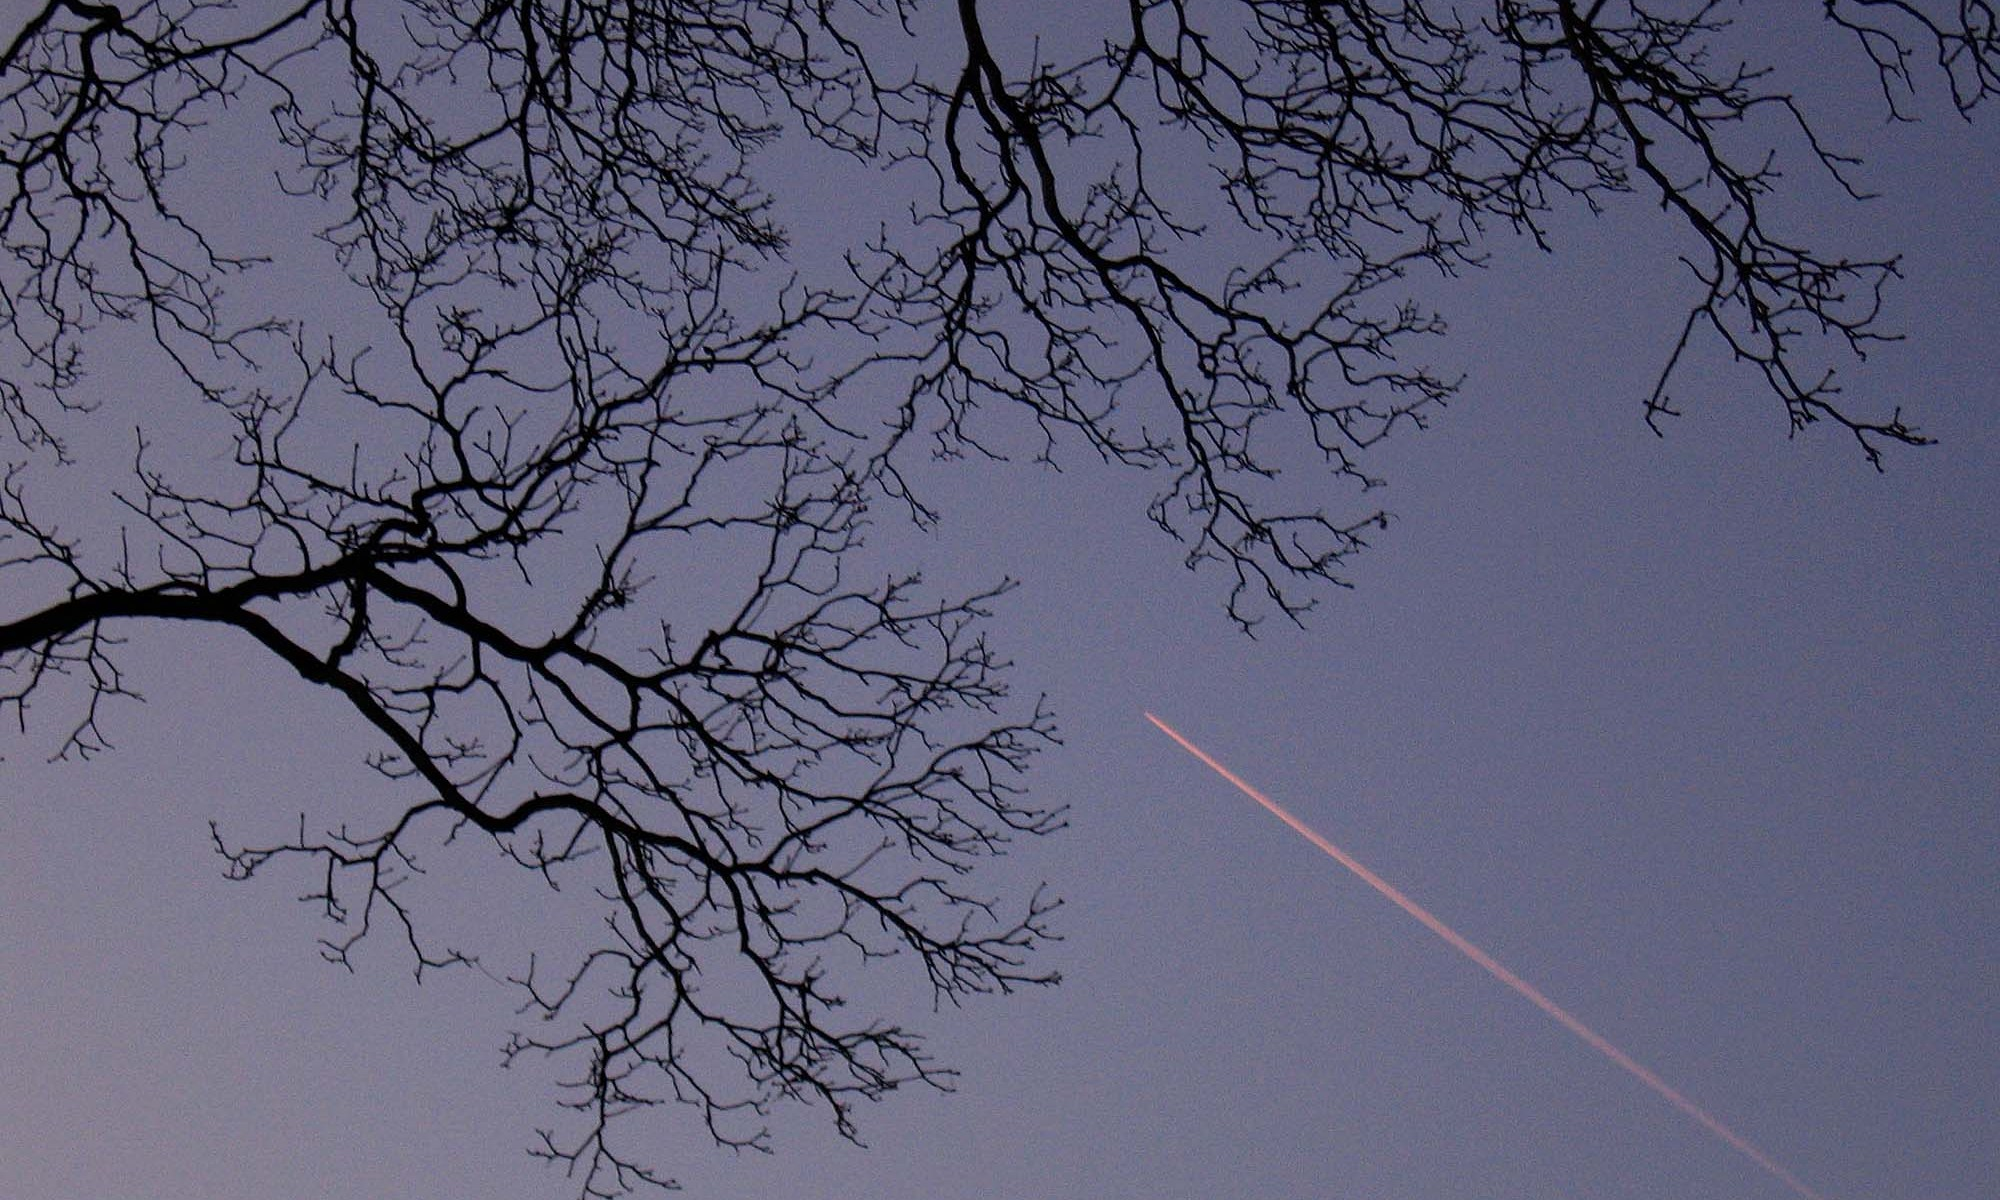 Tree Branch Patterns with Plane Trail